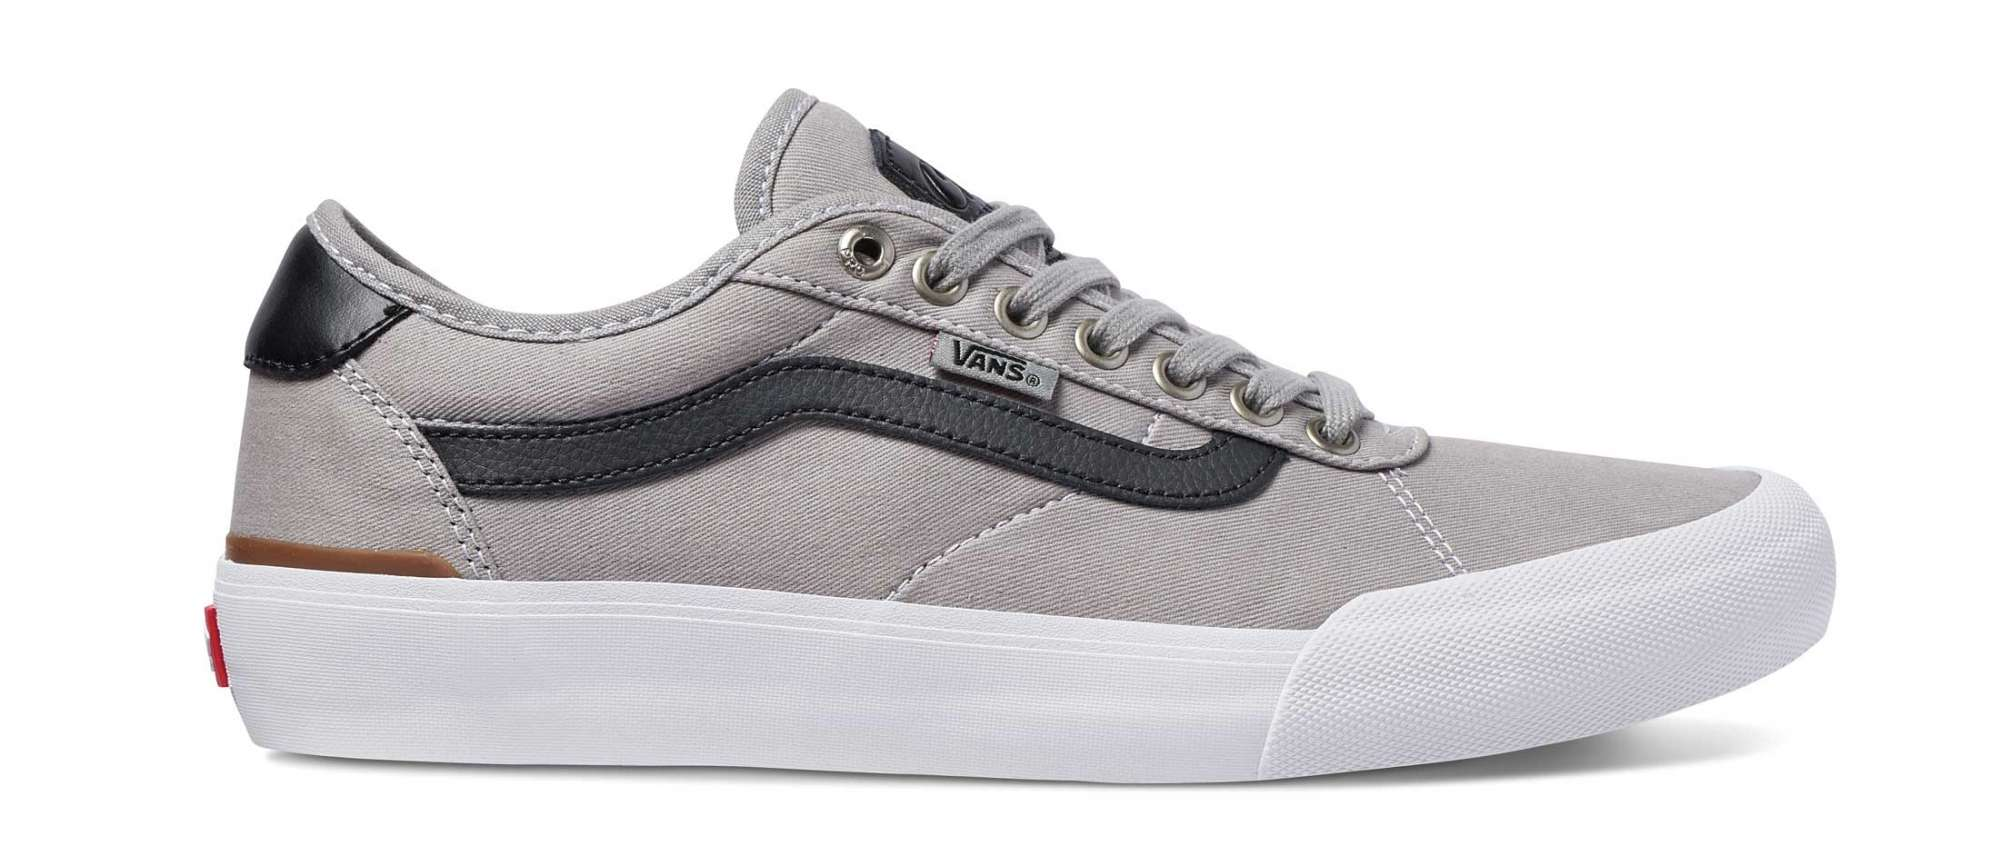 The Chima Pro 2 footwear debut is supported by a signature line of Chima  Ferguson apparel and accessories influenced by the Sydney native s clean 709b4c874